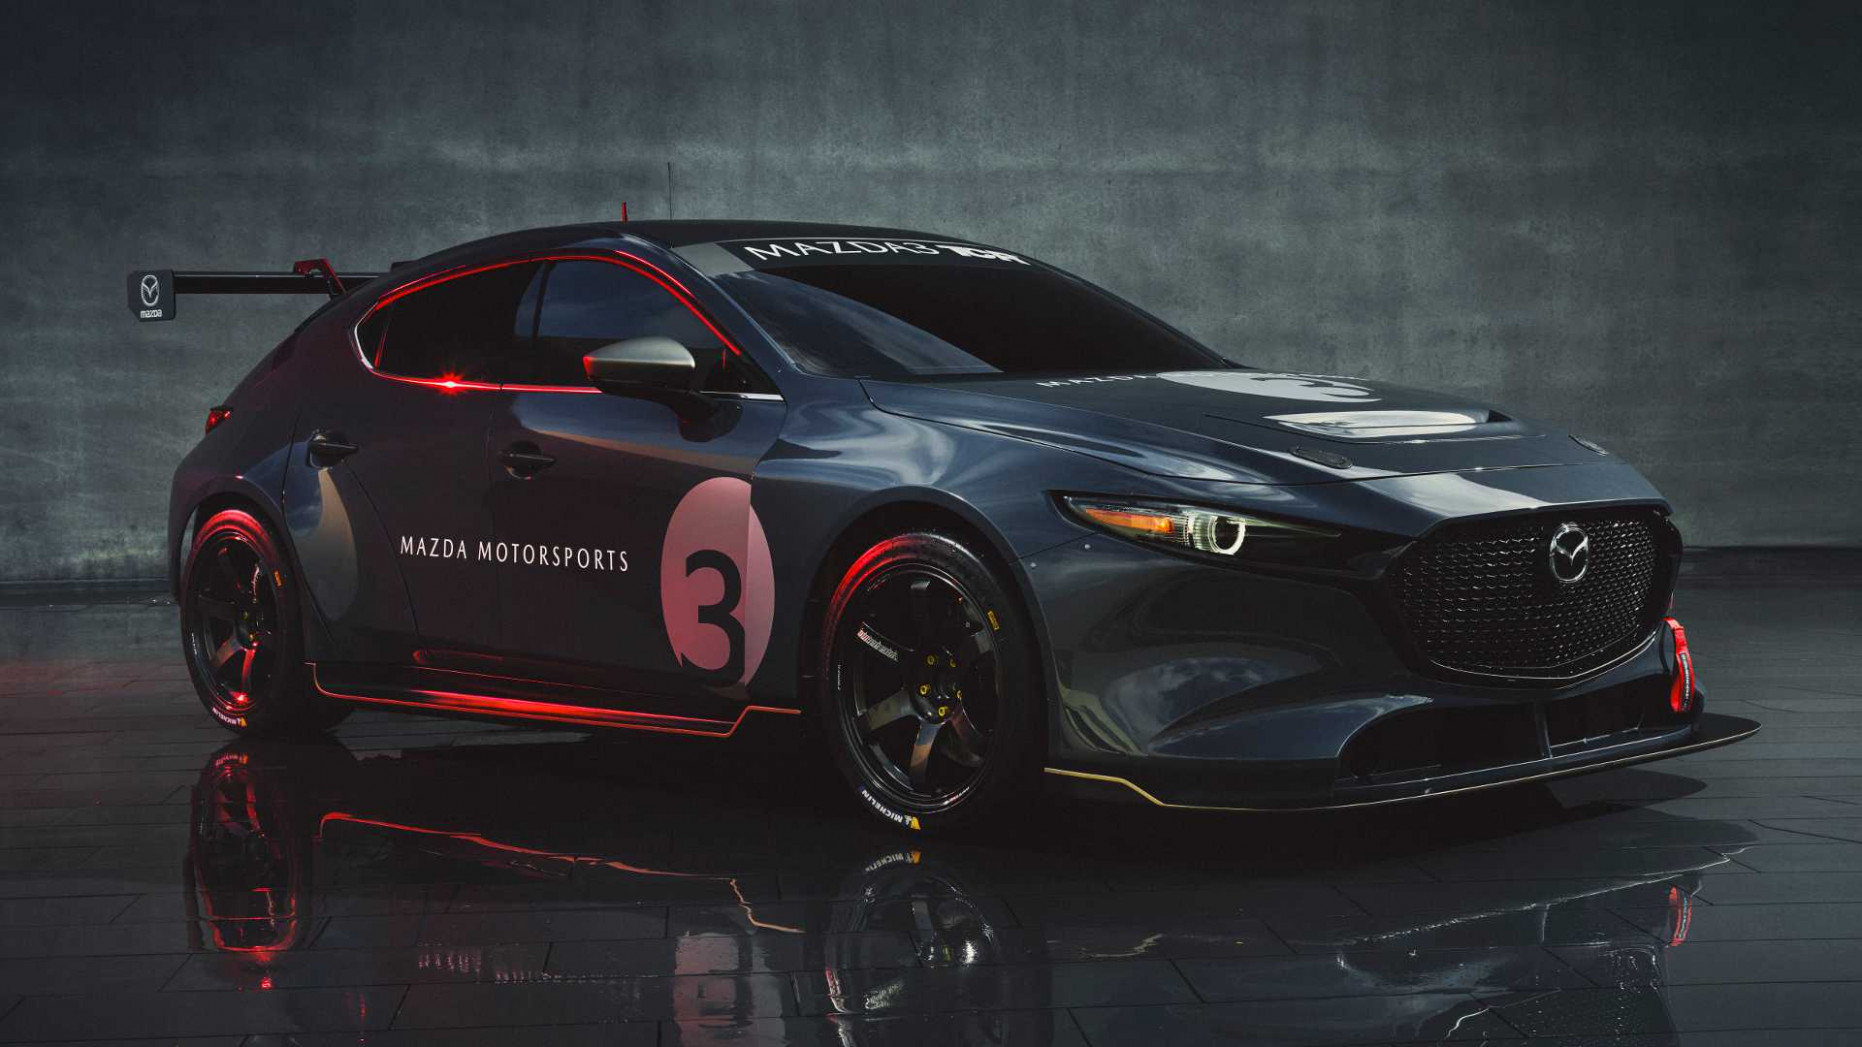 7 Mazda7 TCR Race Car Debuts With 750 HP And Big Wing